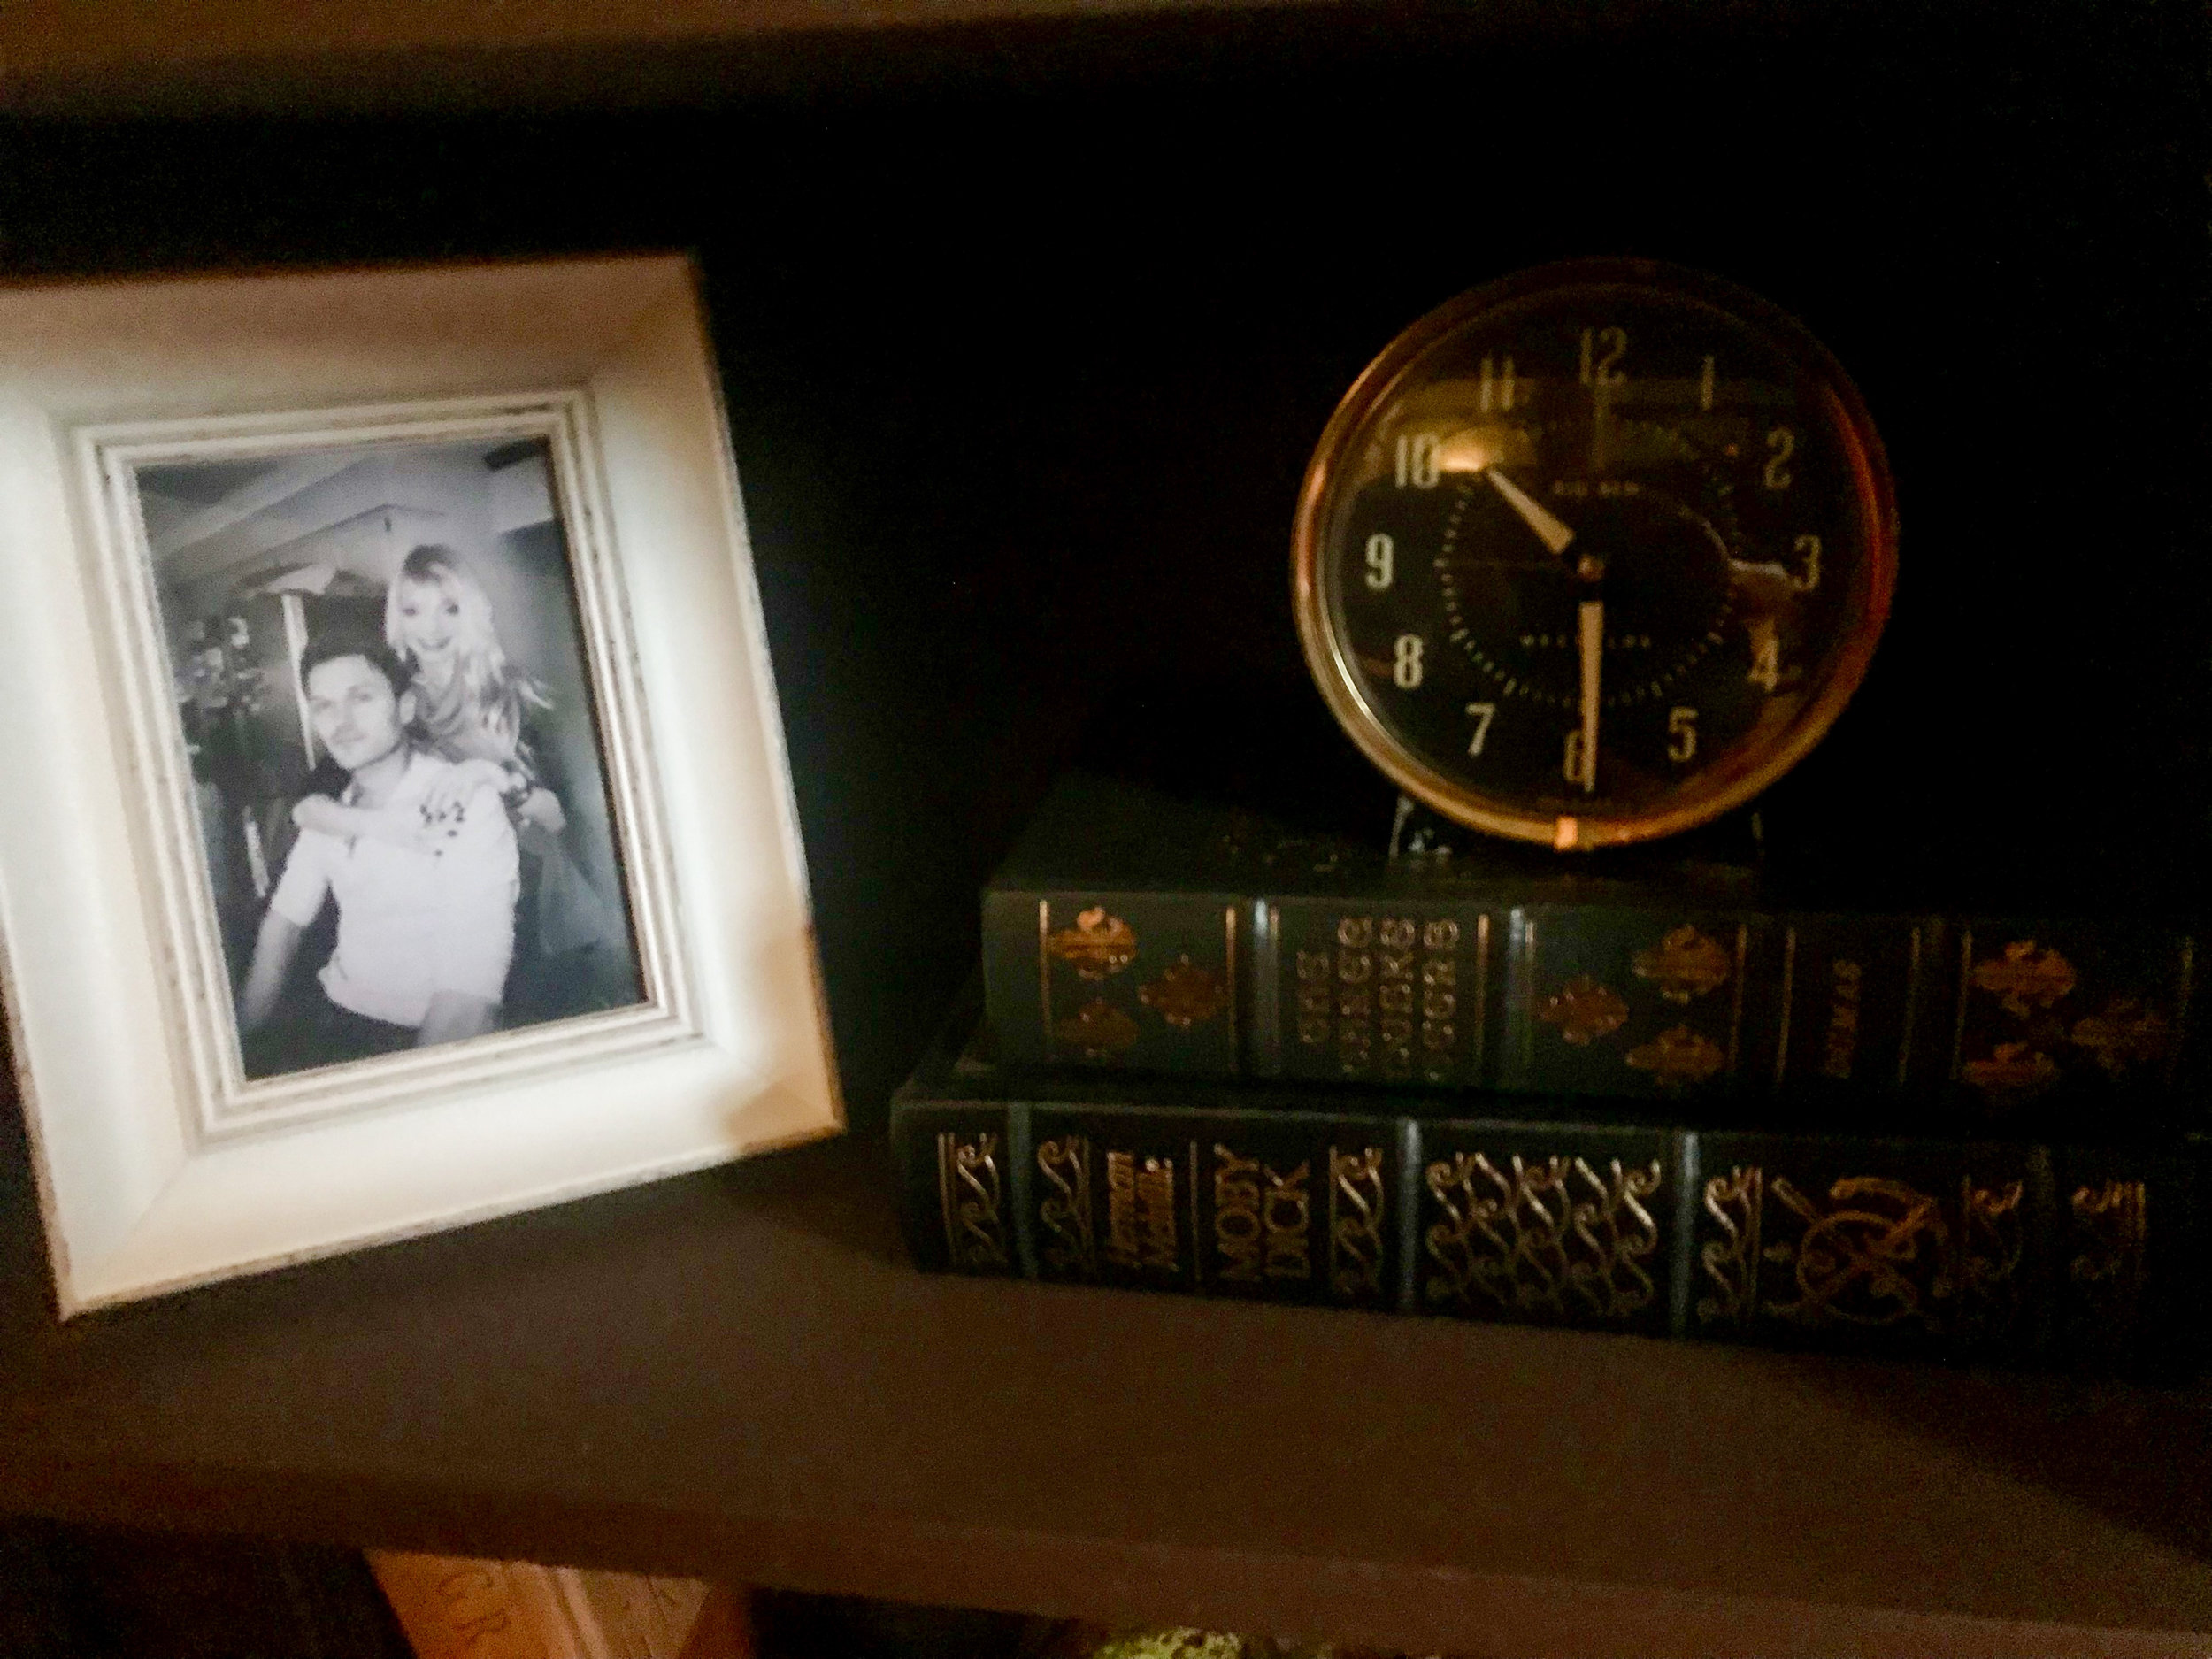 Incorporating a photo of Terry and me in a new frame with vintage books and a vintage Big Ben clock on the bookshelf.